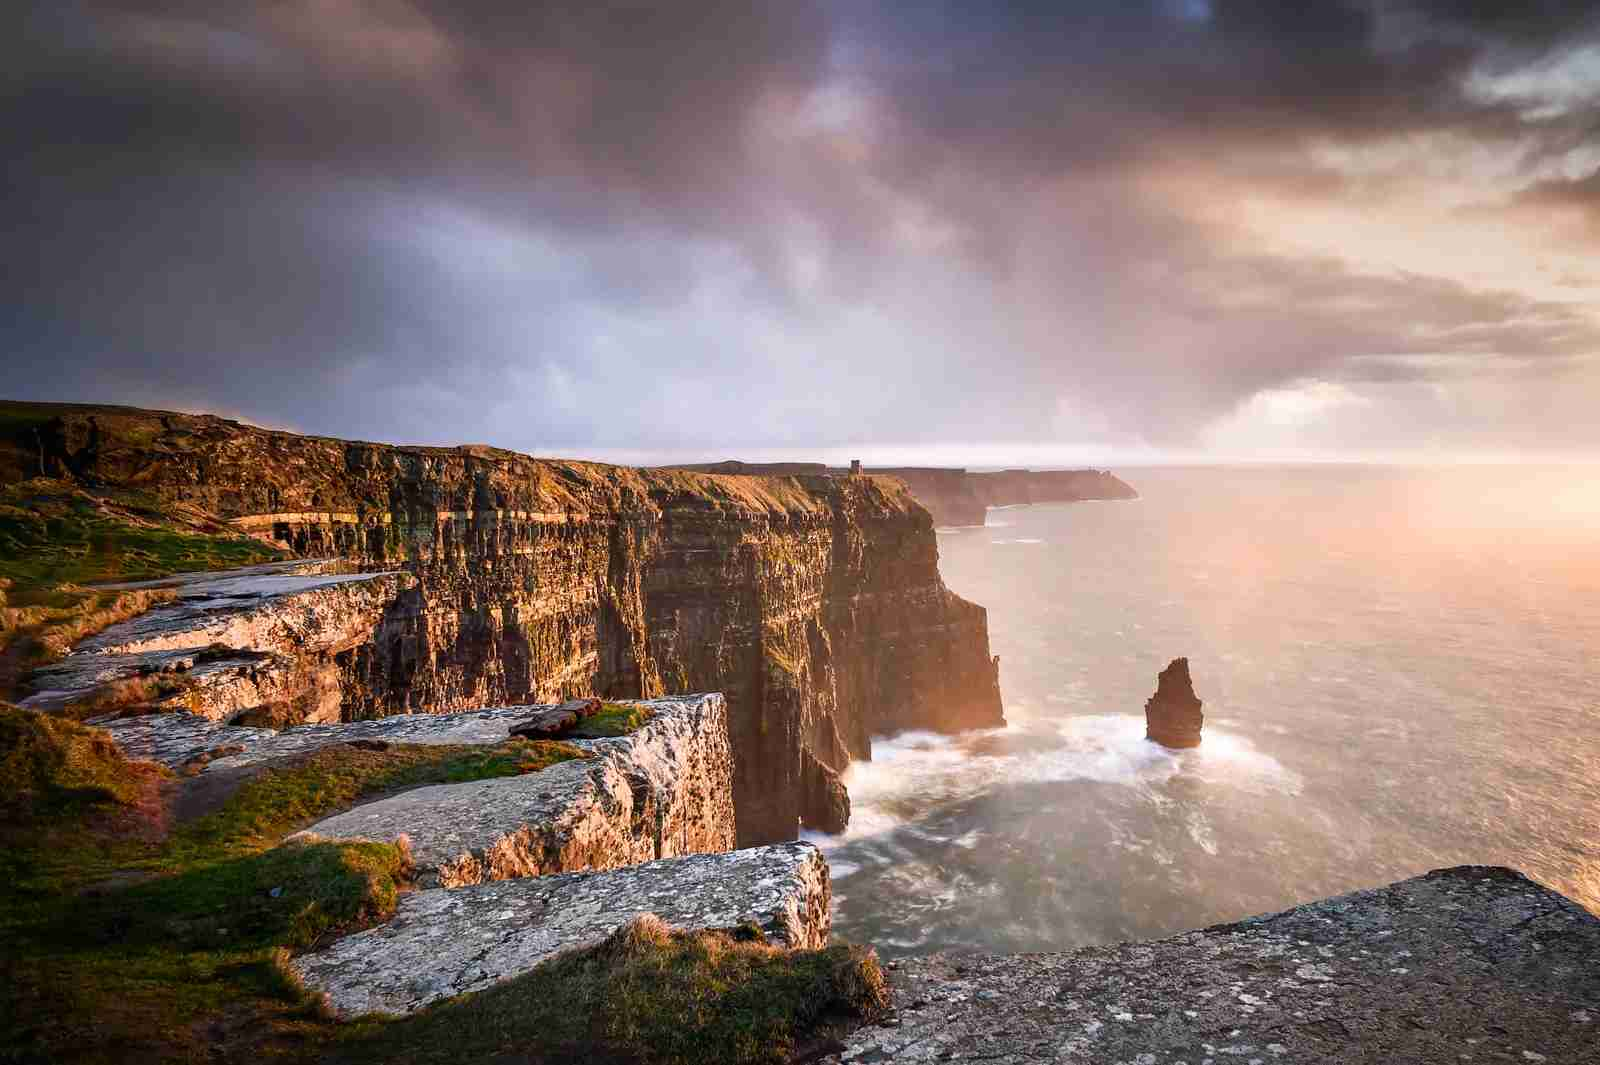 The Cliffs of Moher. (Photo by George Karbus Photography/Getty Images)